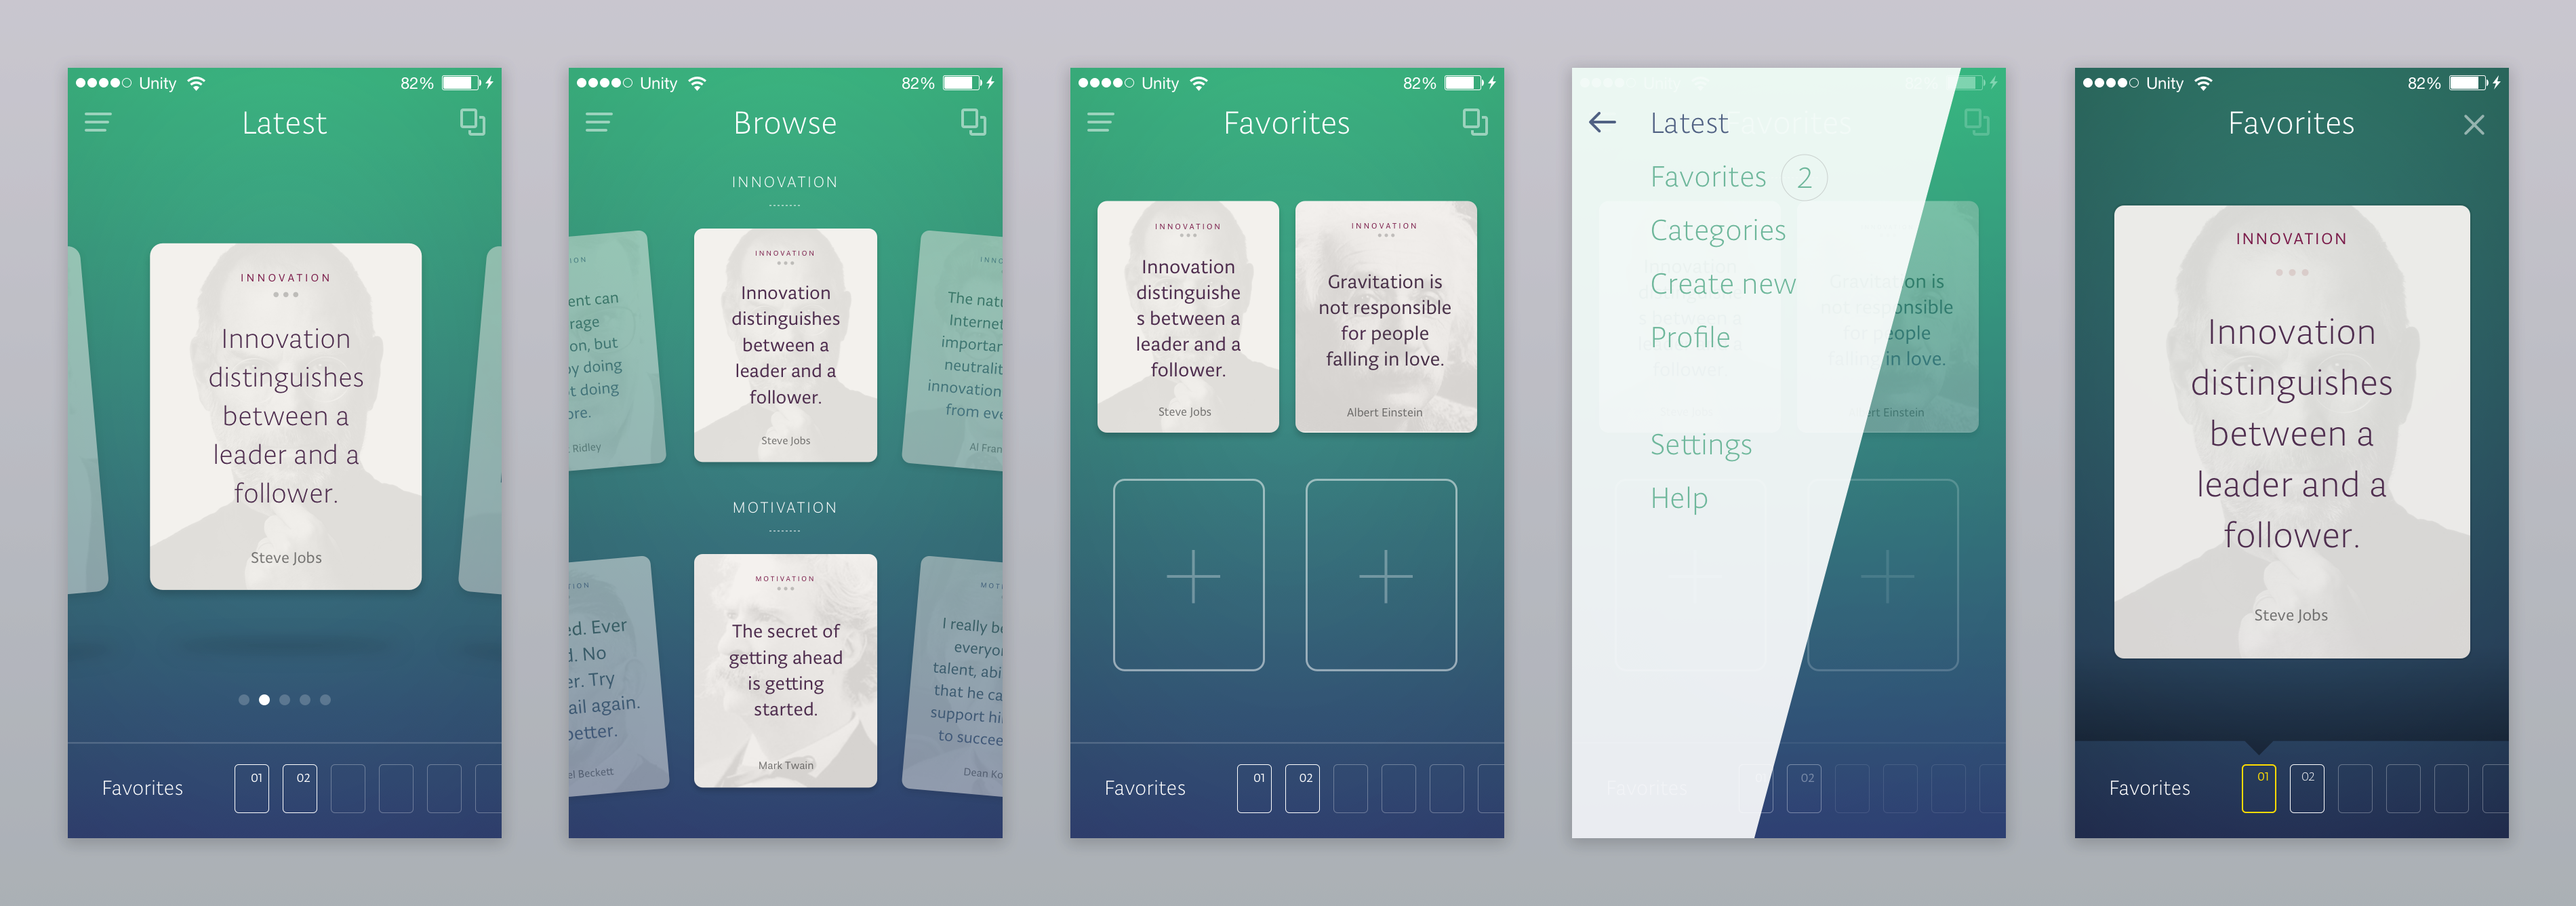 Quotes App Sketch Freebie By Ante Matijaca For Profico On Dribbble